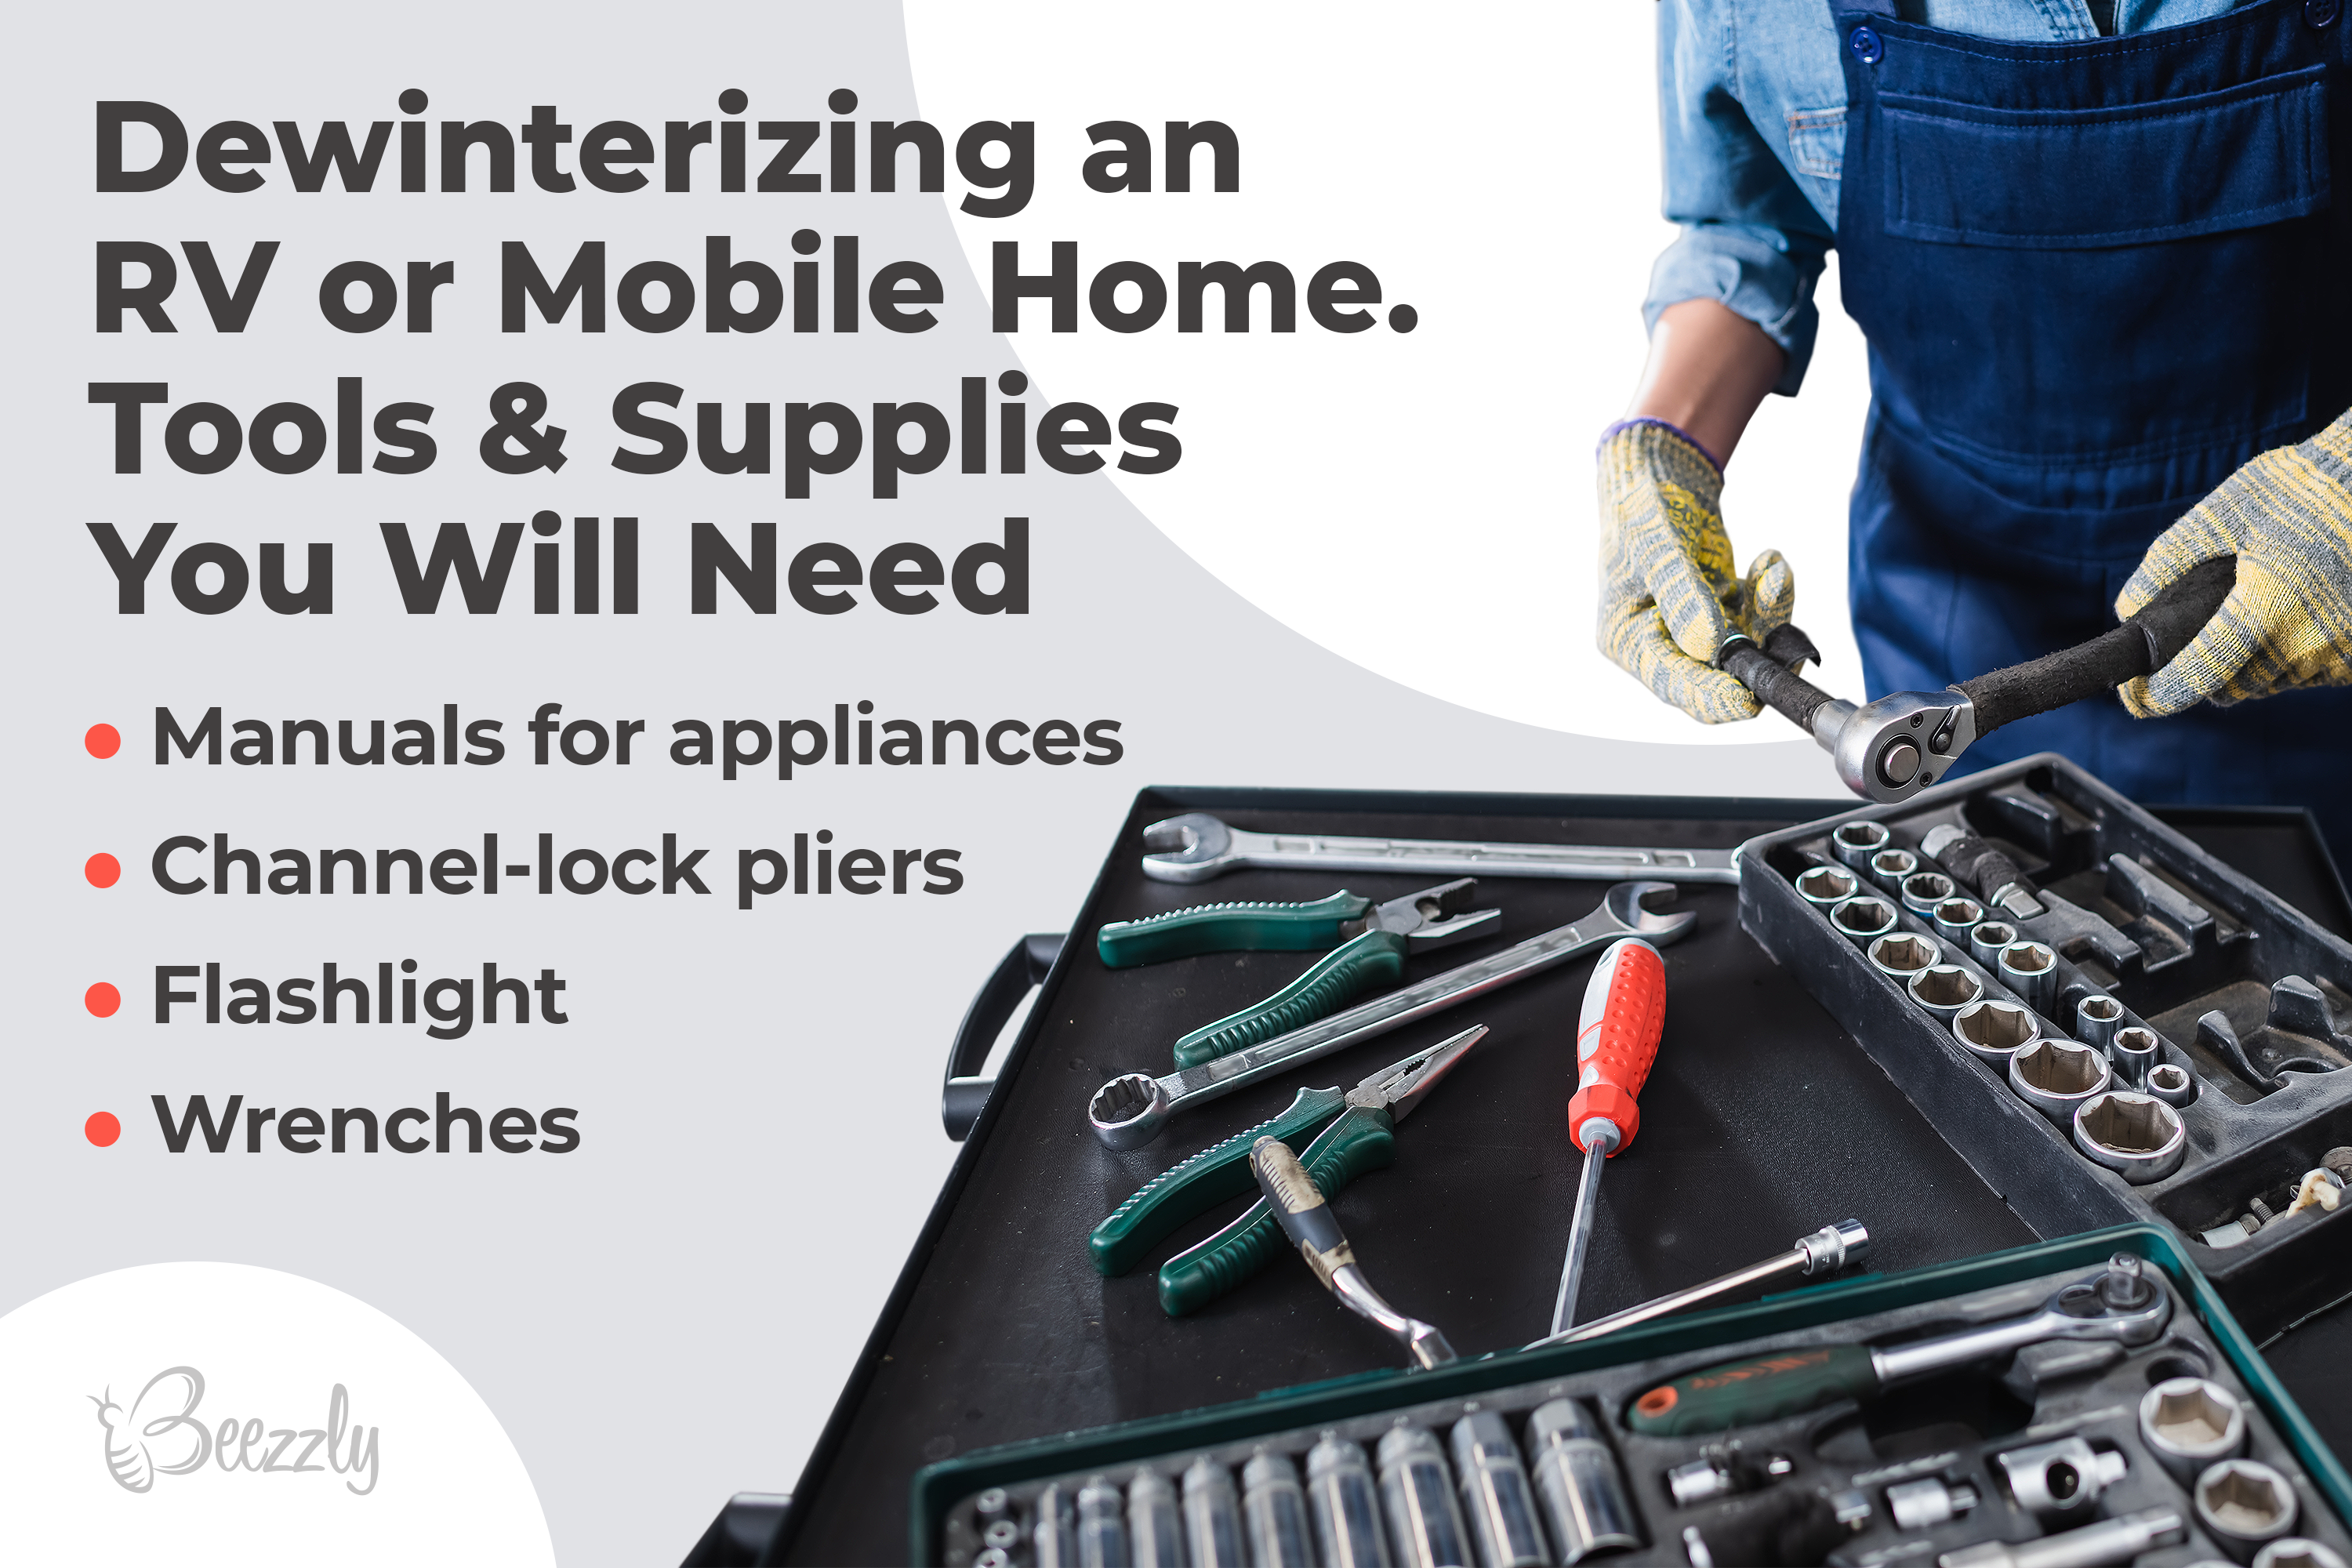 Dewinterizing an RV or Mobile Home. Tools & Supplies You Will Need